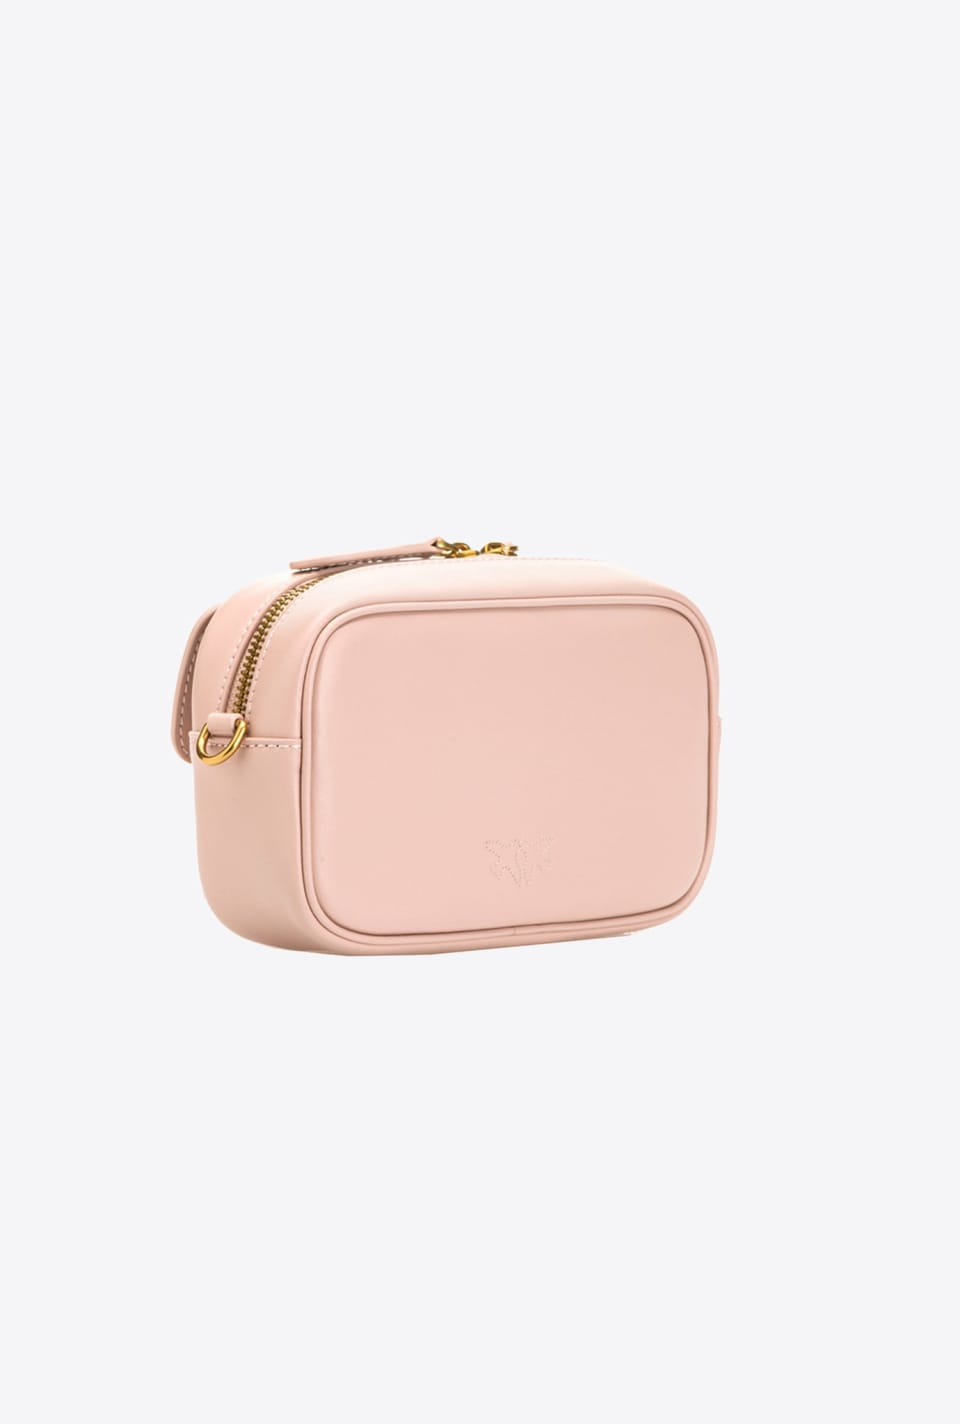 Baby Square Bag Simply - Pinko